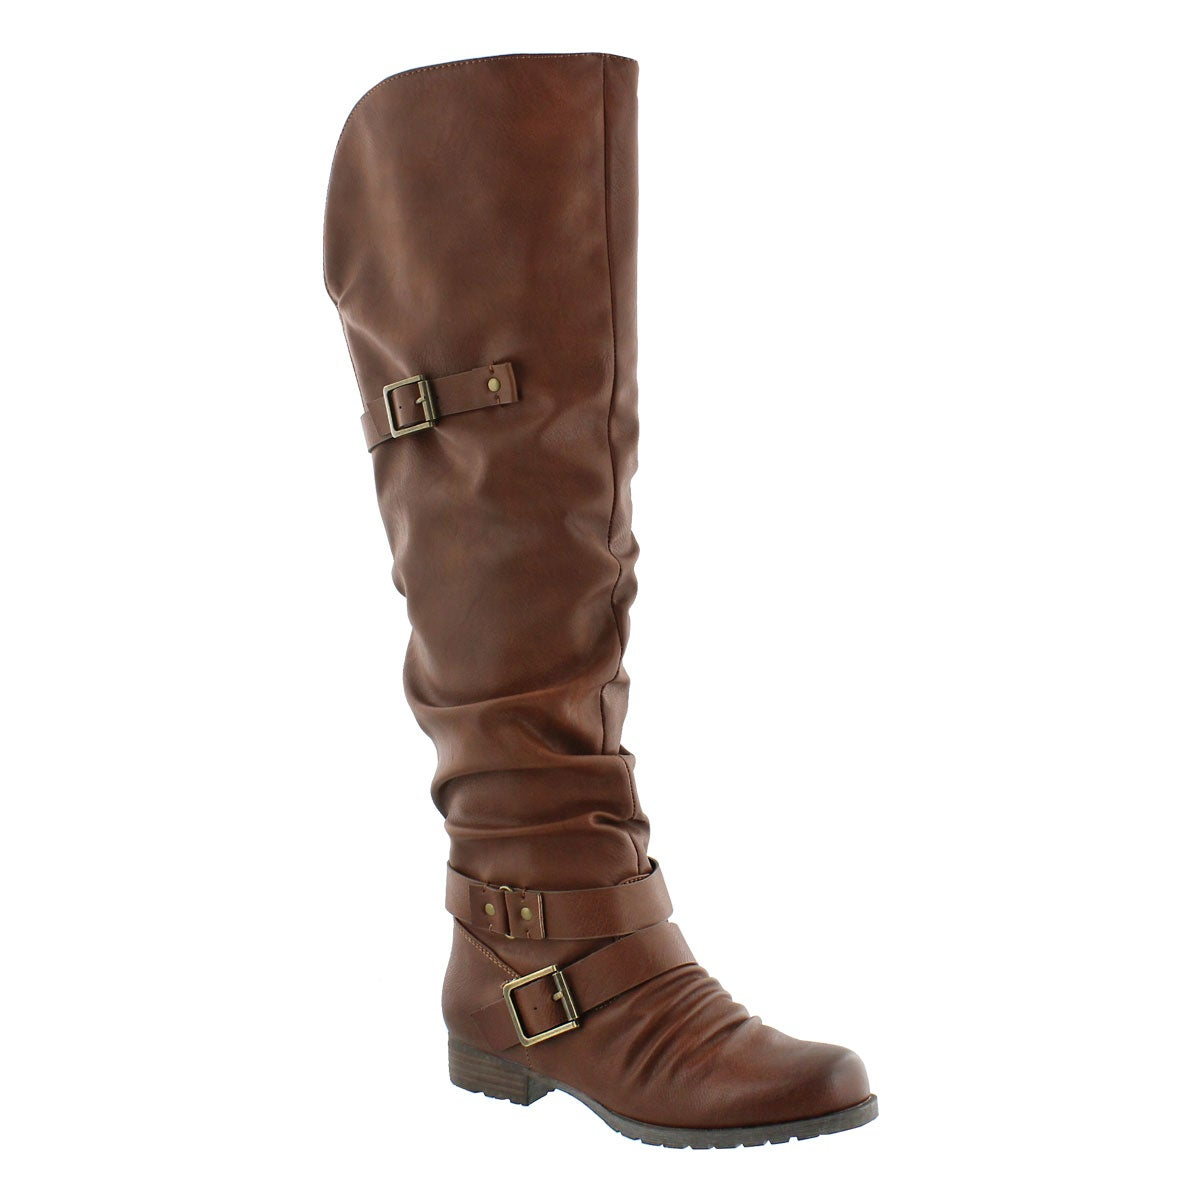 Women's BRAELYNN rust over the knee boots